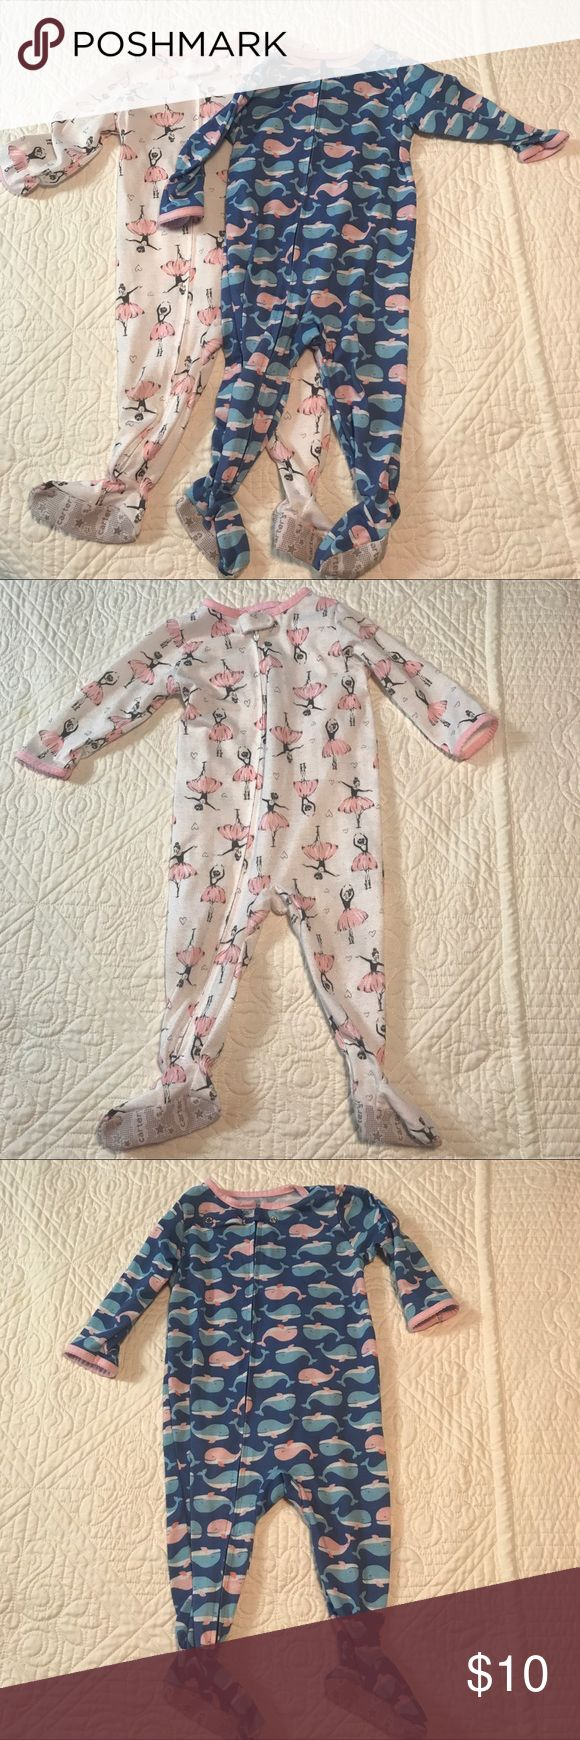 Baby Girl Pajama Bundle Two 12M PJ onesies from Carters, ballerina print & whale print both in good pre-owned condition. Carter's Pajamas Pajama Sets